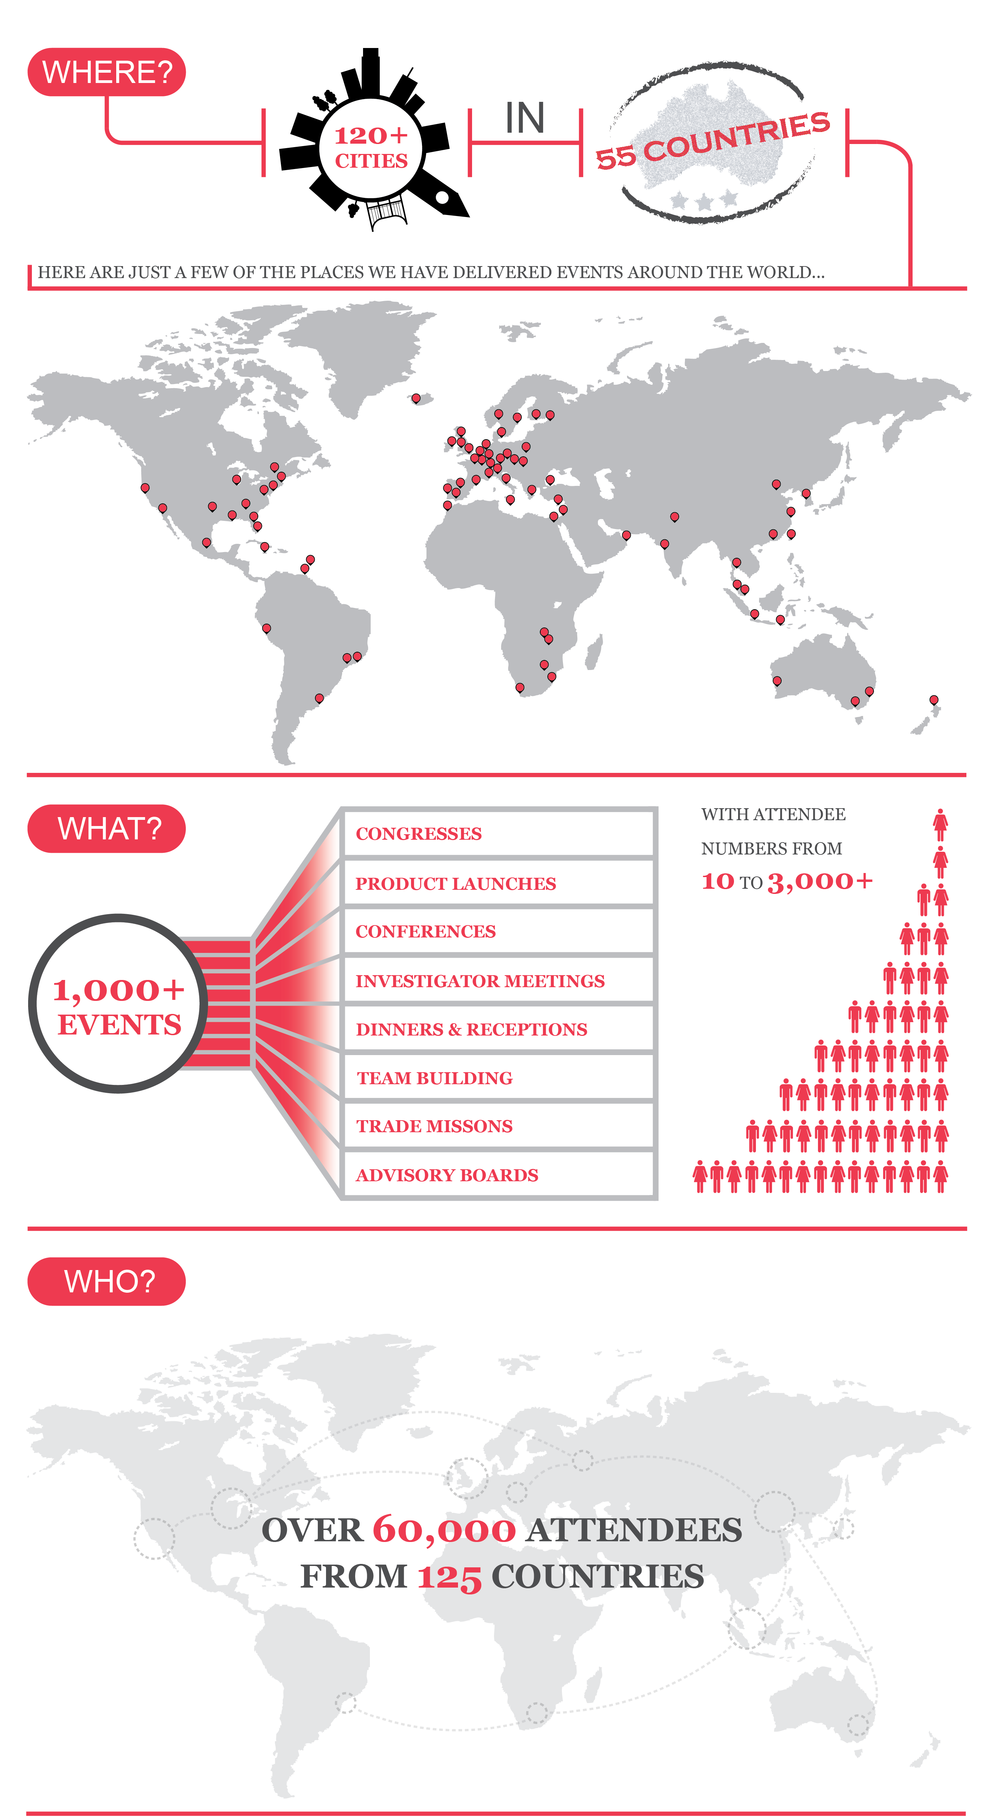 20131205 World Map Infographic (final)-01.png